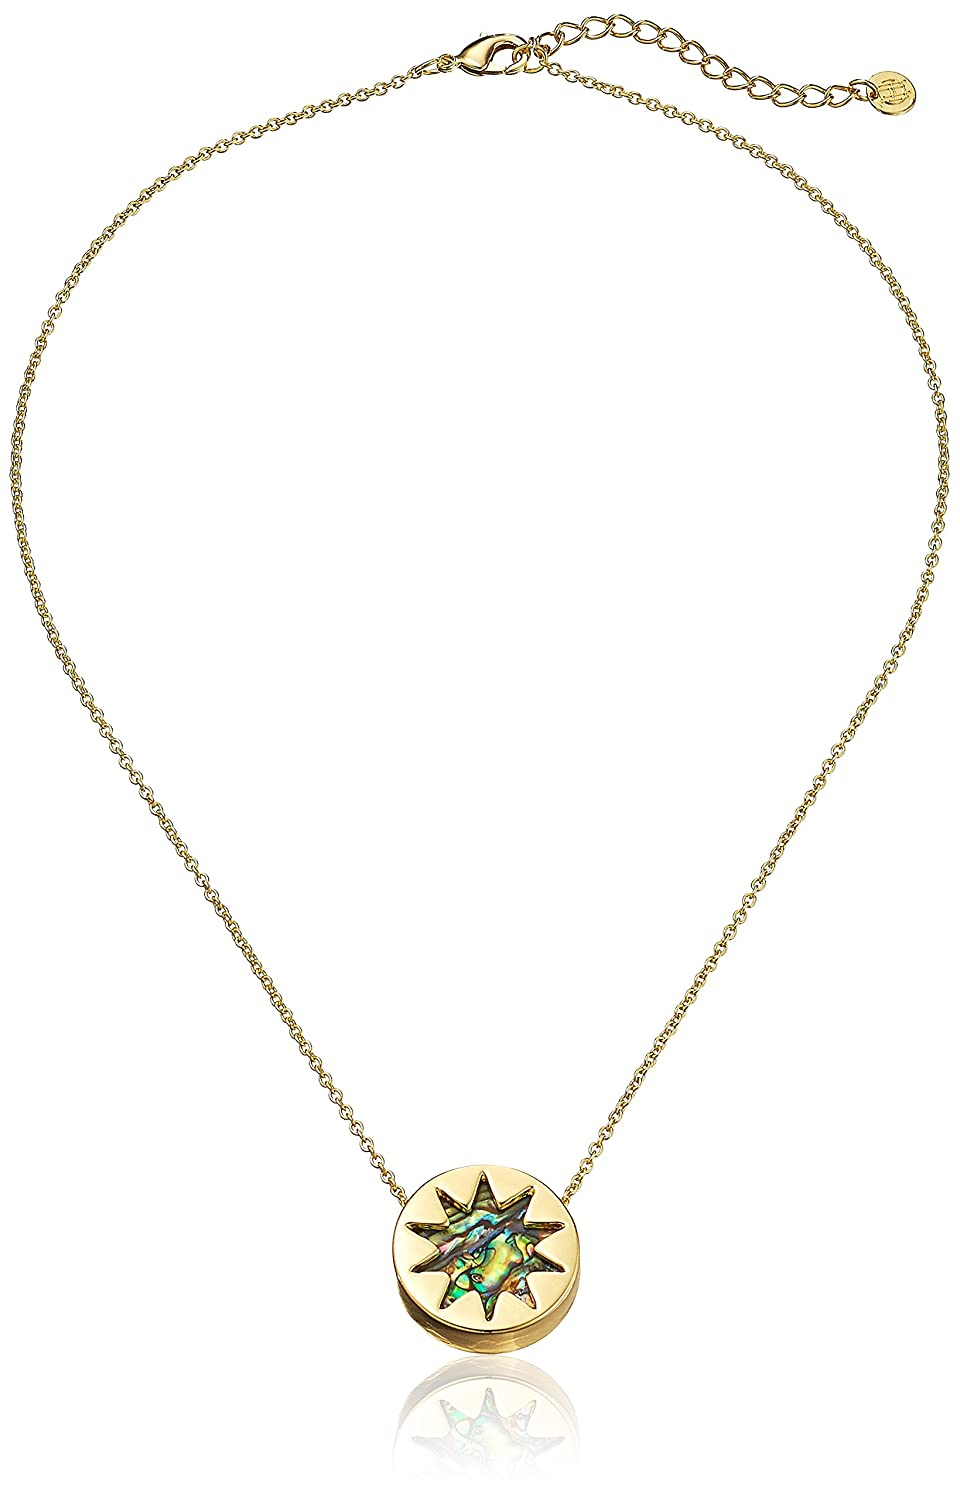 pav pendant harlow necklace house of gold khaki pave sunburst fashionest products